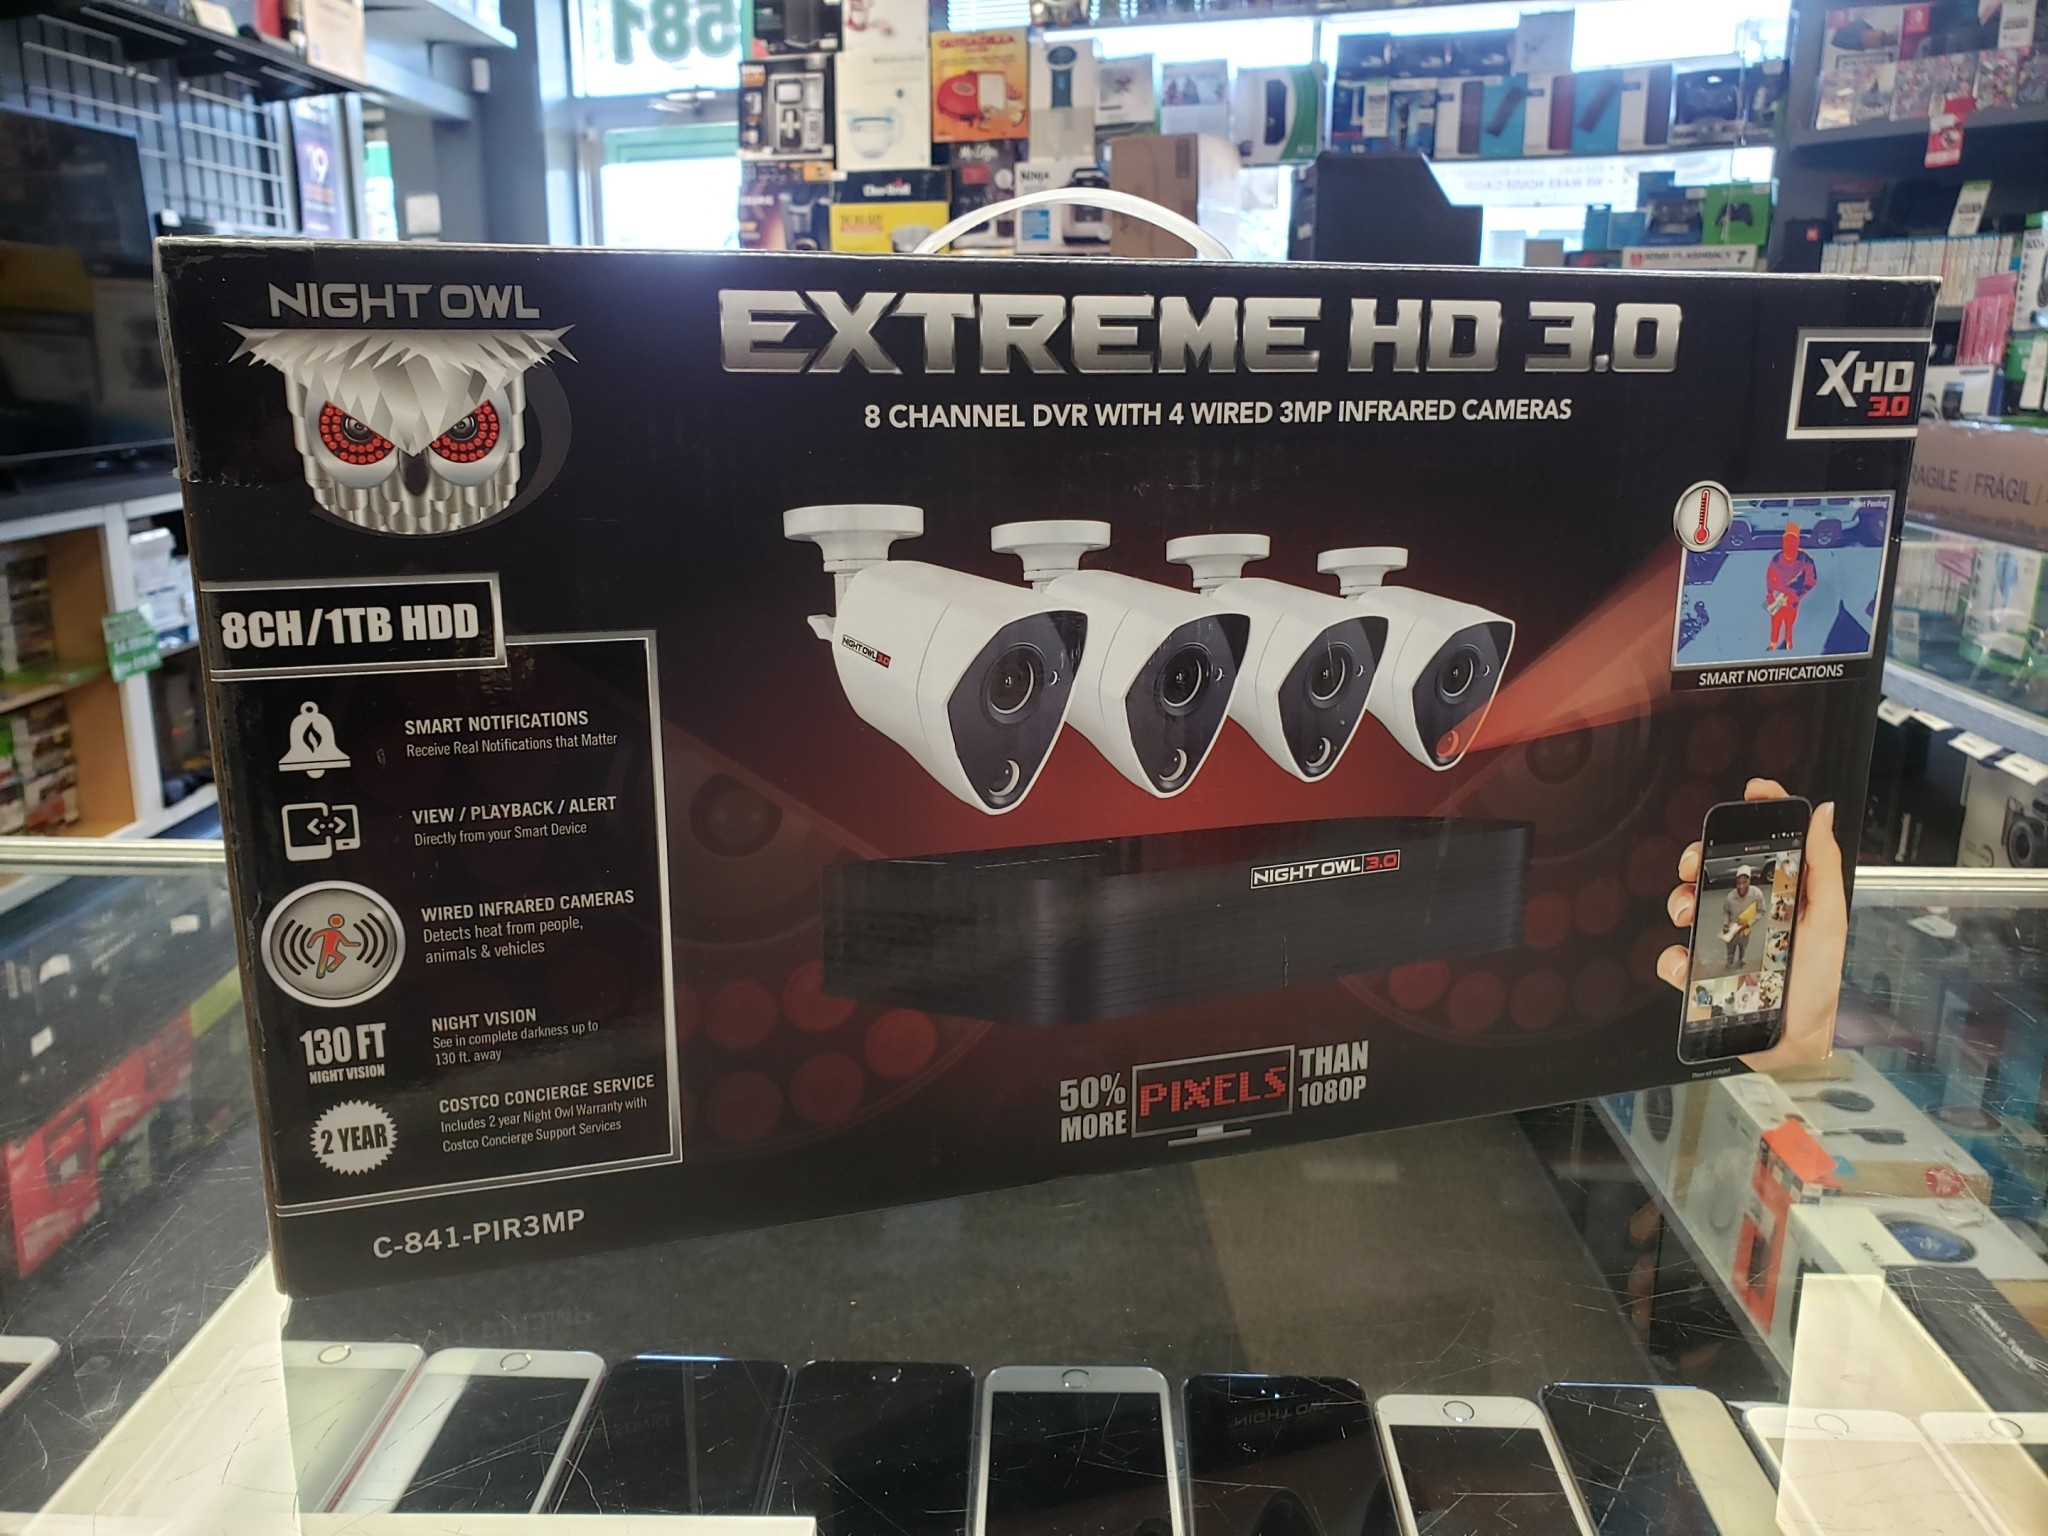 Night Owl Extreme HD 3.0 - 4 Camera / 8 Channel 1TB DVR Home Security Camera Kit